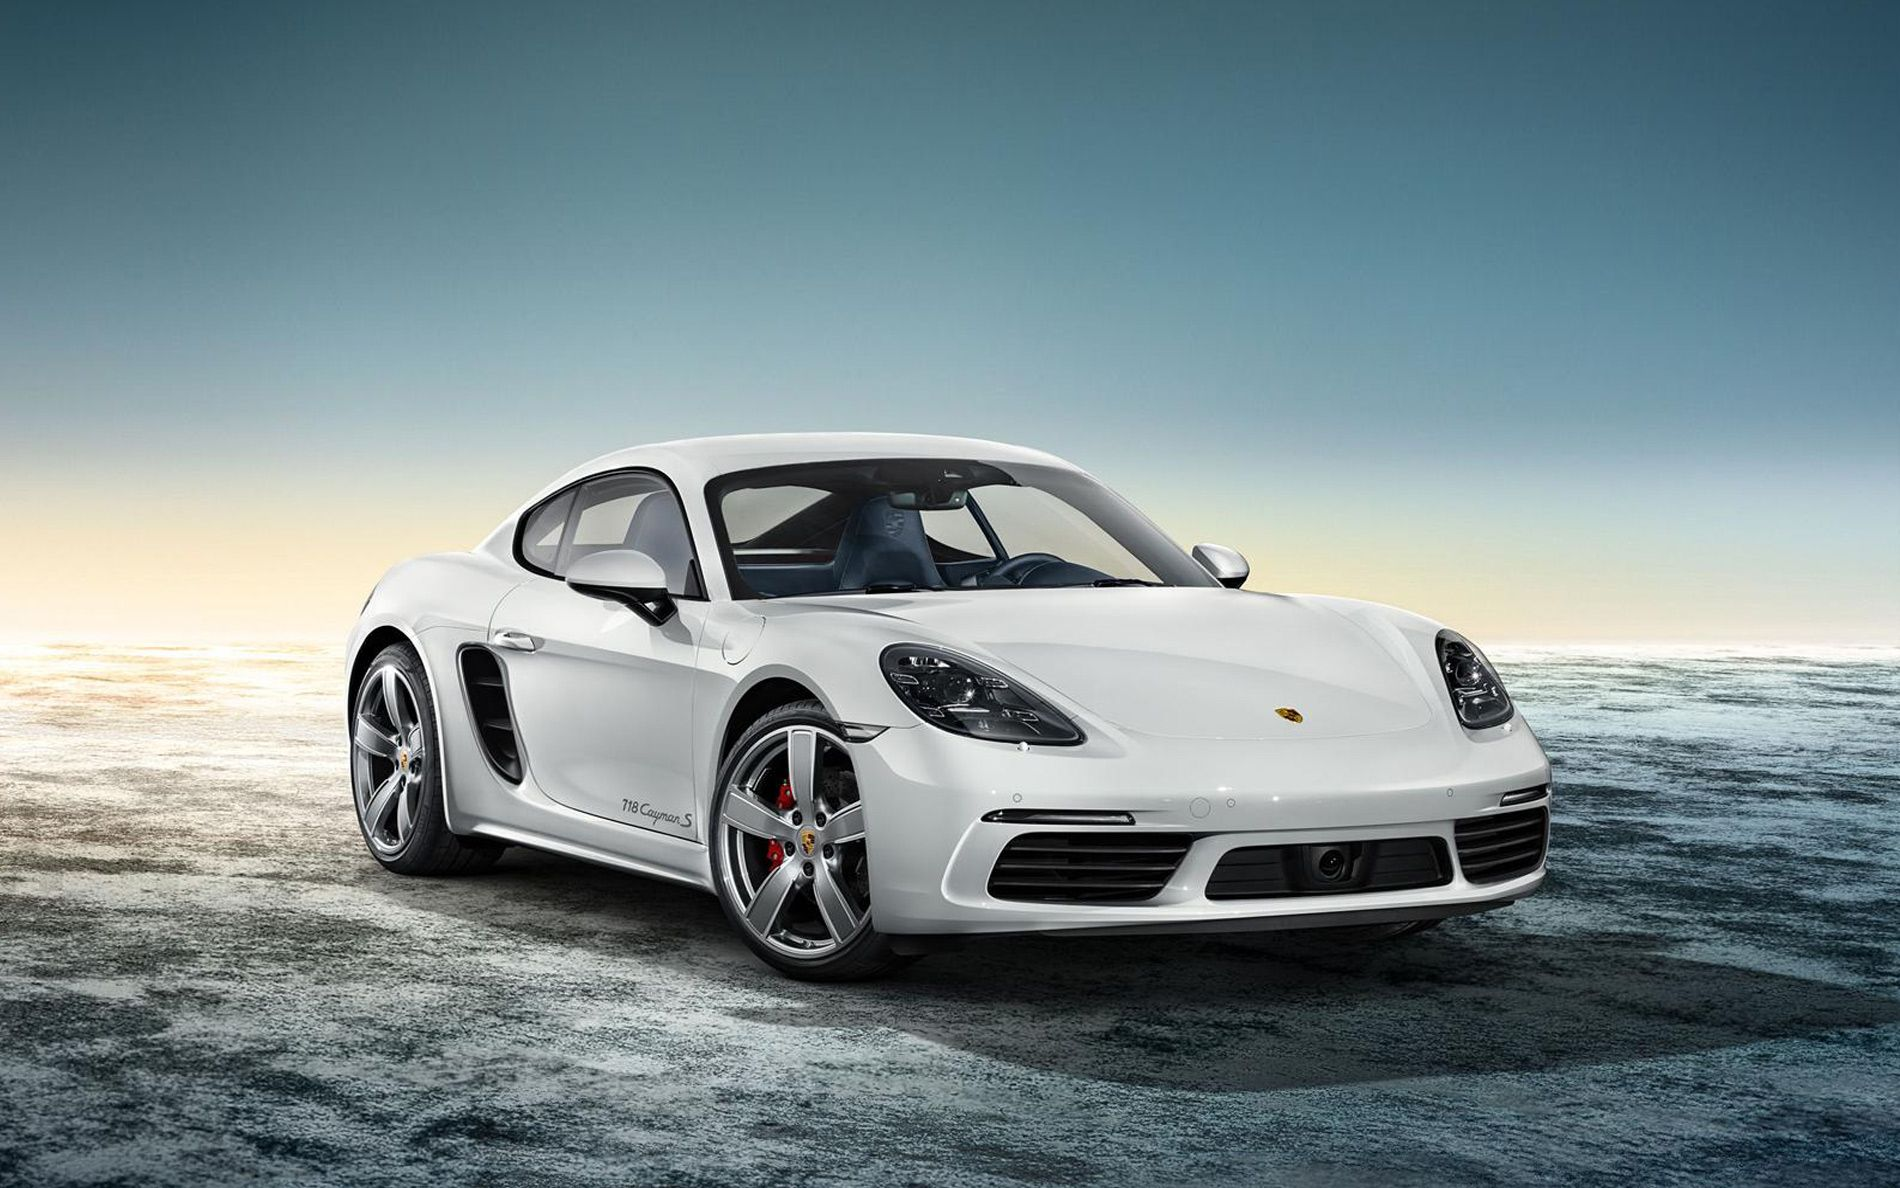 Luxury Car Rental Dubai and Exotic Sports Cars for Rent in Dubai